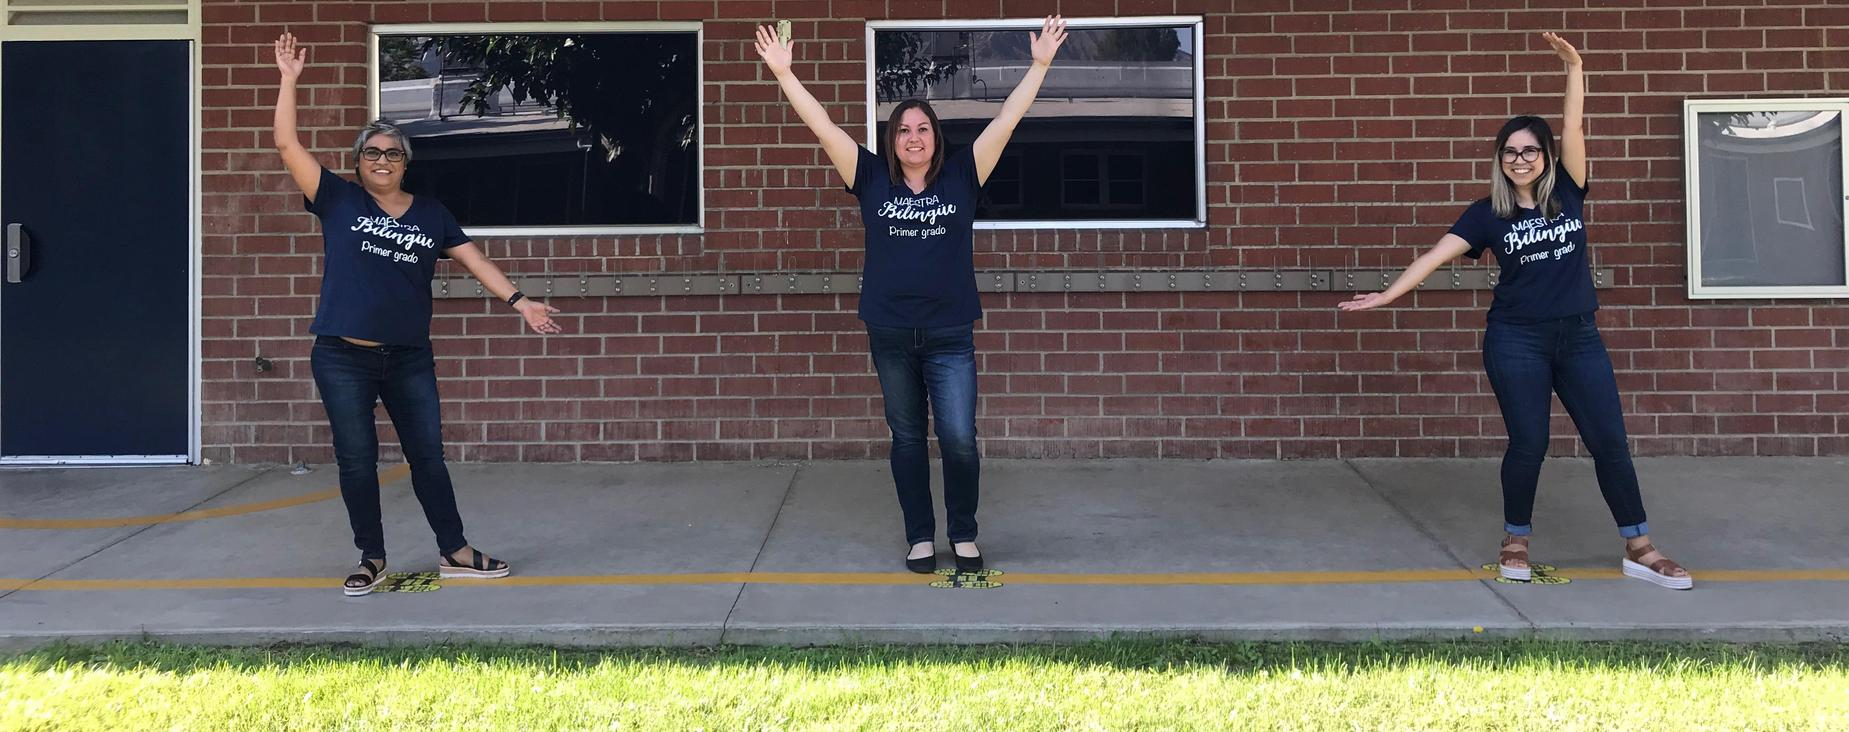 3 teachers standing with arms up